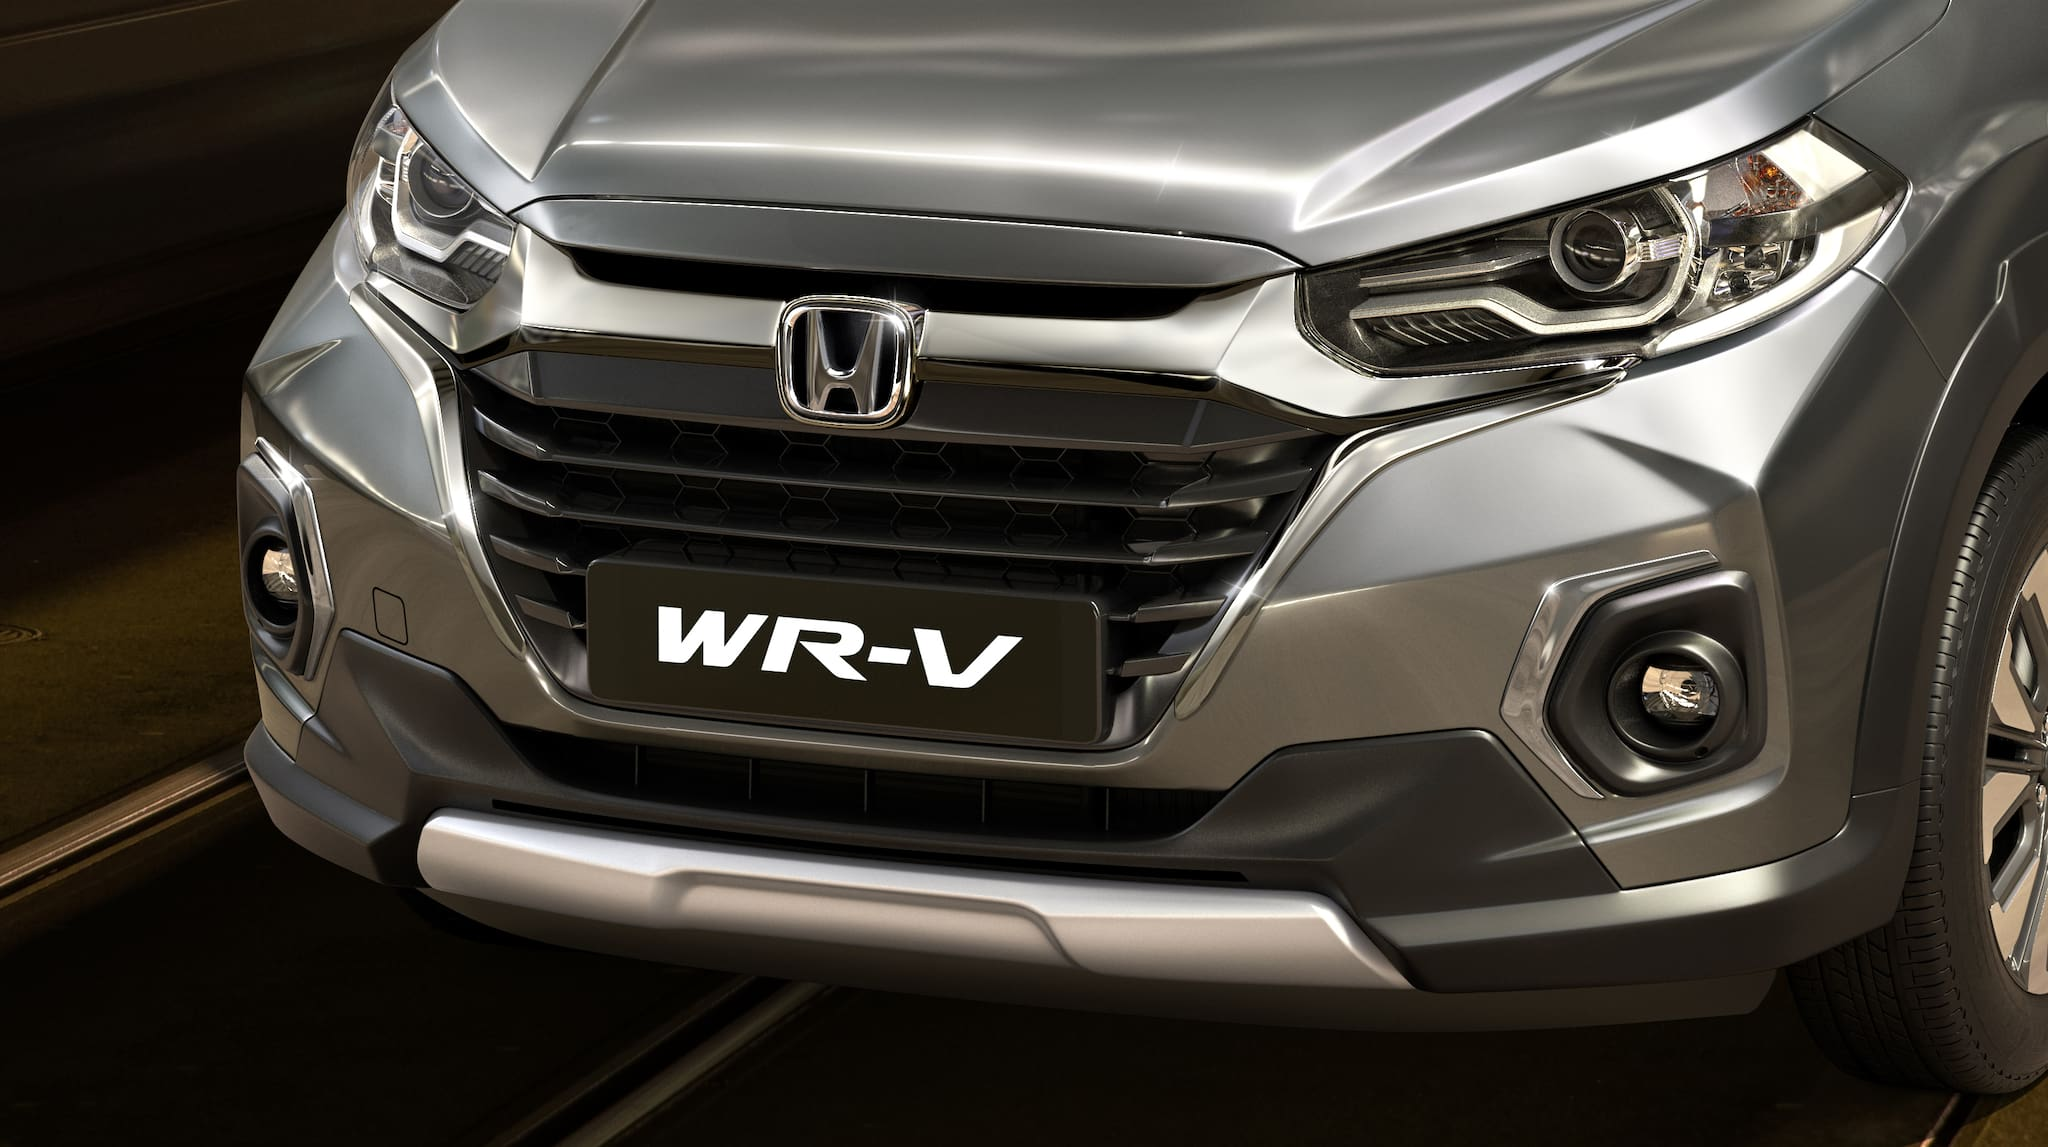 Honda Launches Special Editions Of The Amaze And WR-V